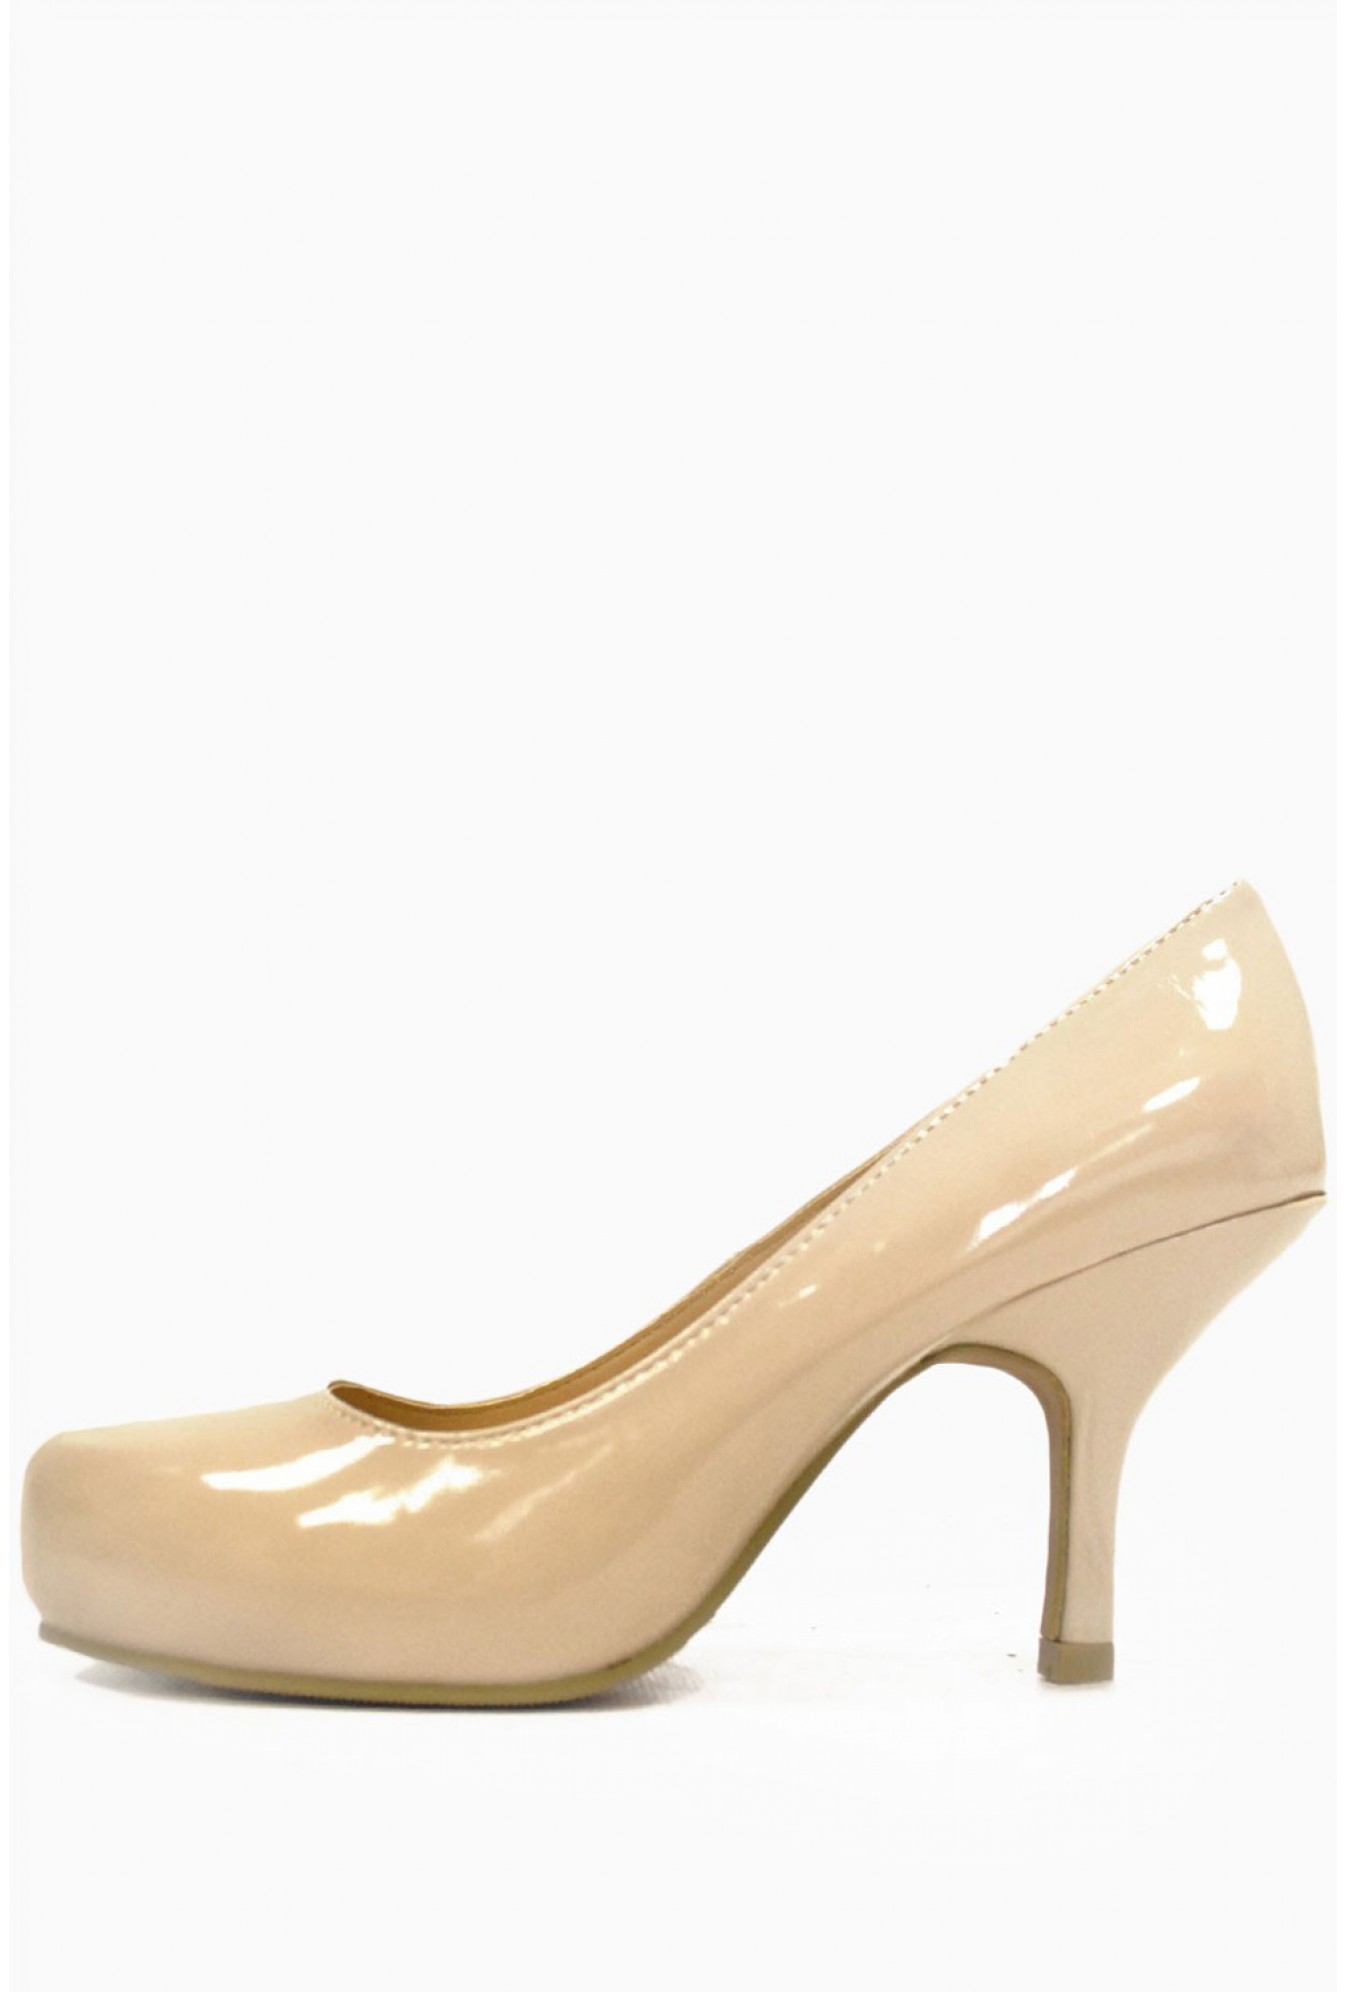 8d9f9f94f51 Ivy Patent Mid Heel Court Shoe in Nude